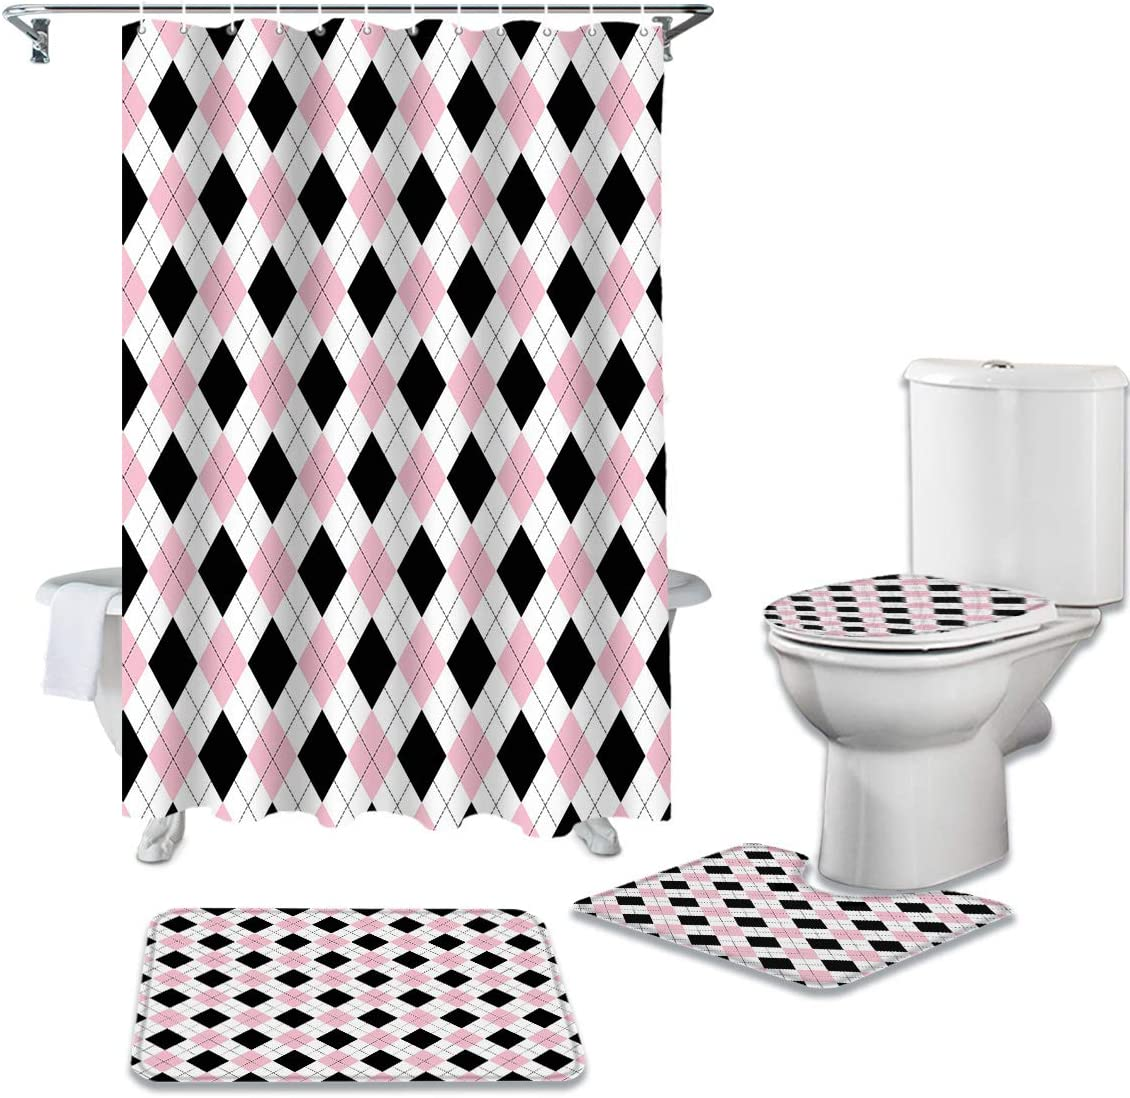 CHARMHOME 4 New sales Piece Shower Curtain Toilet Non-Slip Max 83% OFF Sets with Rug